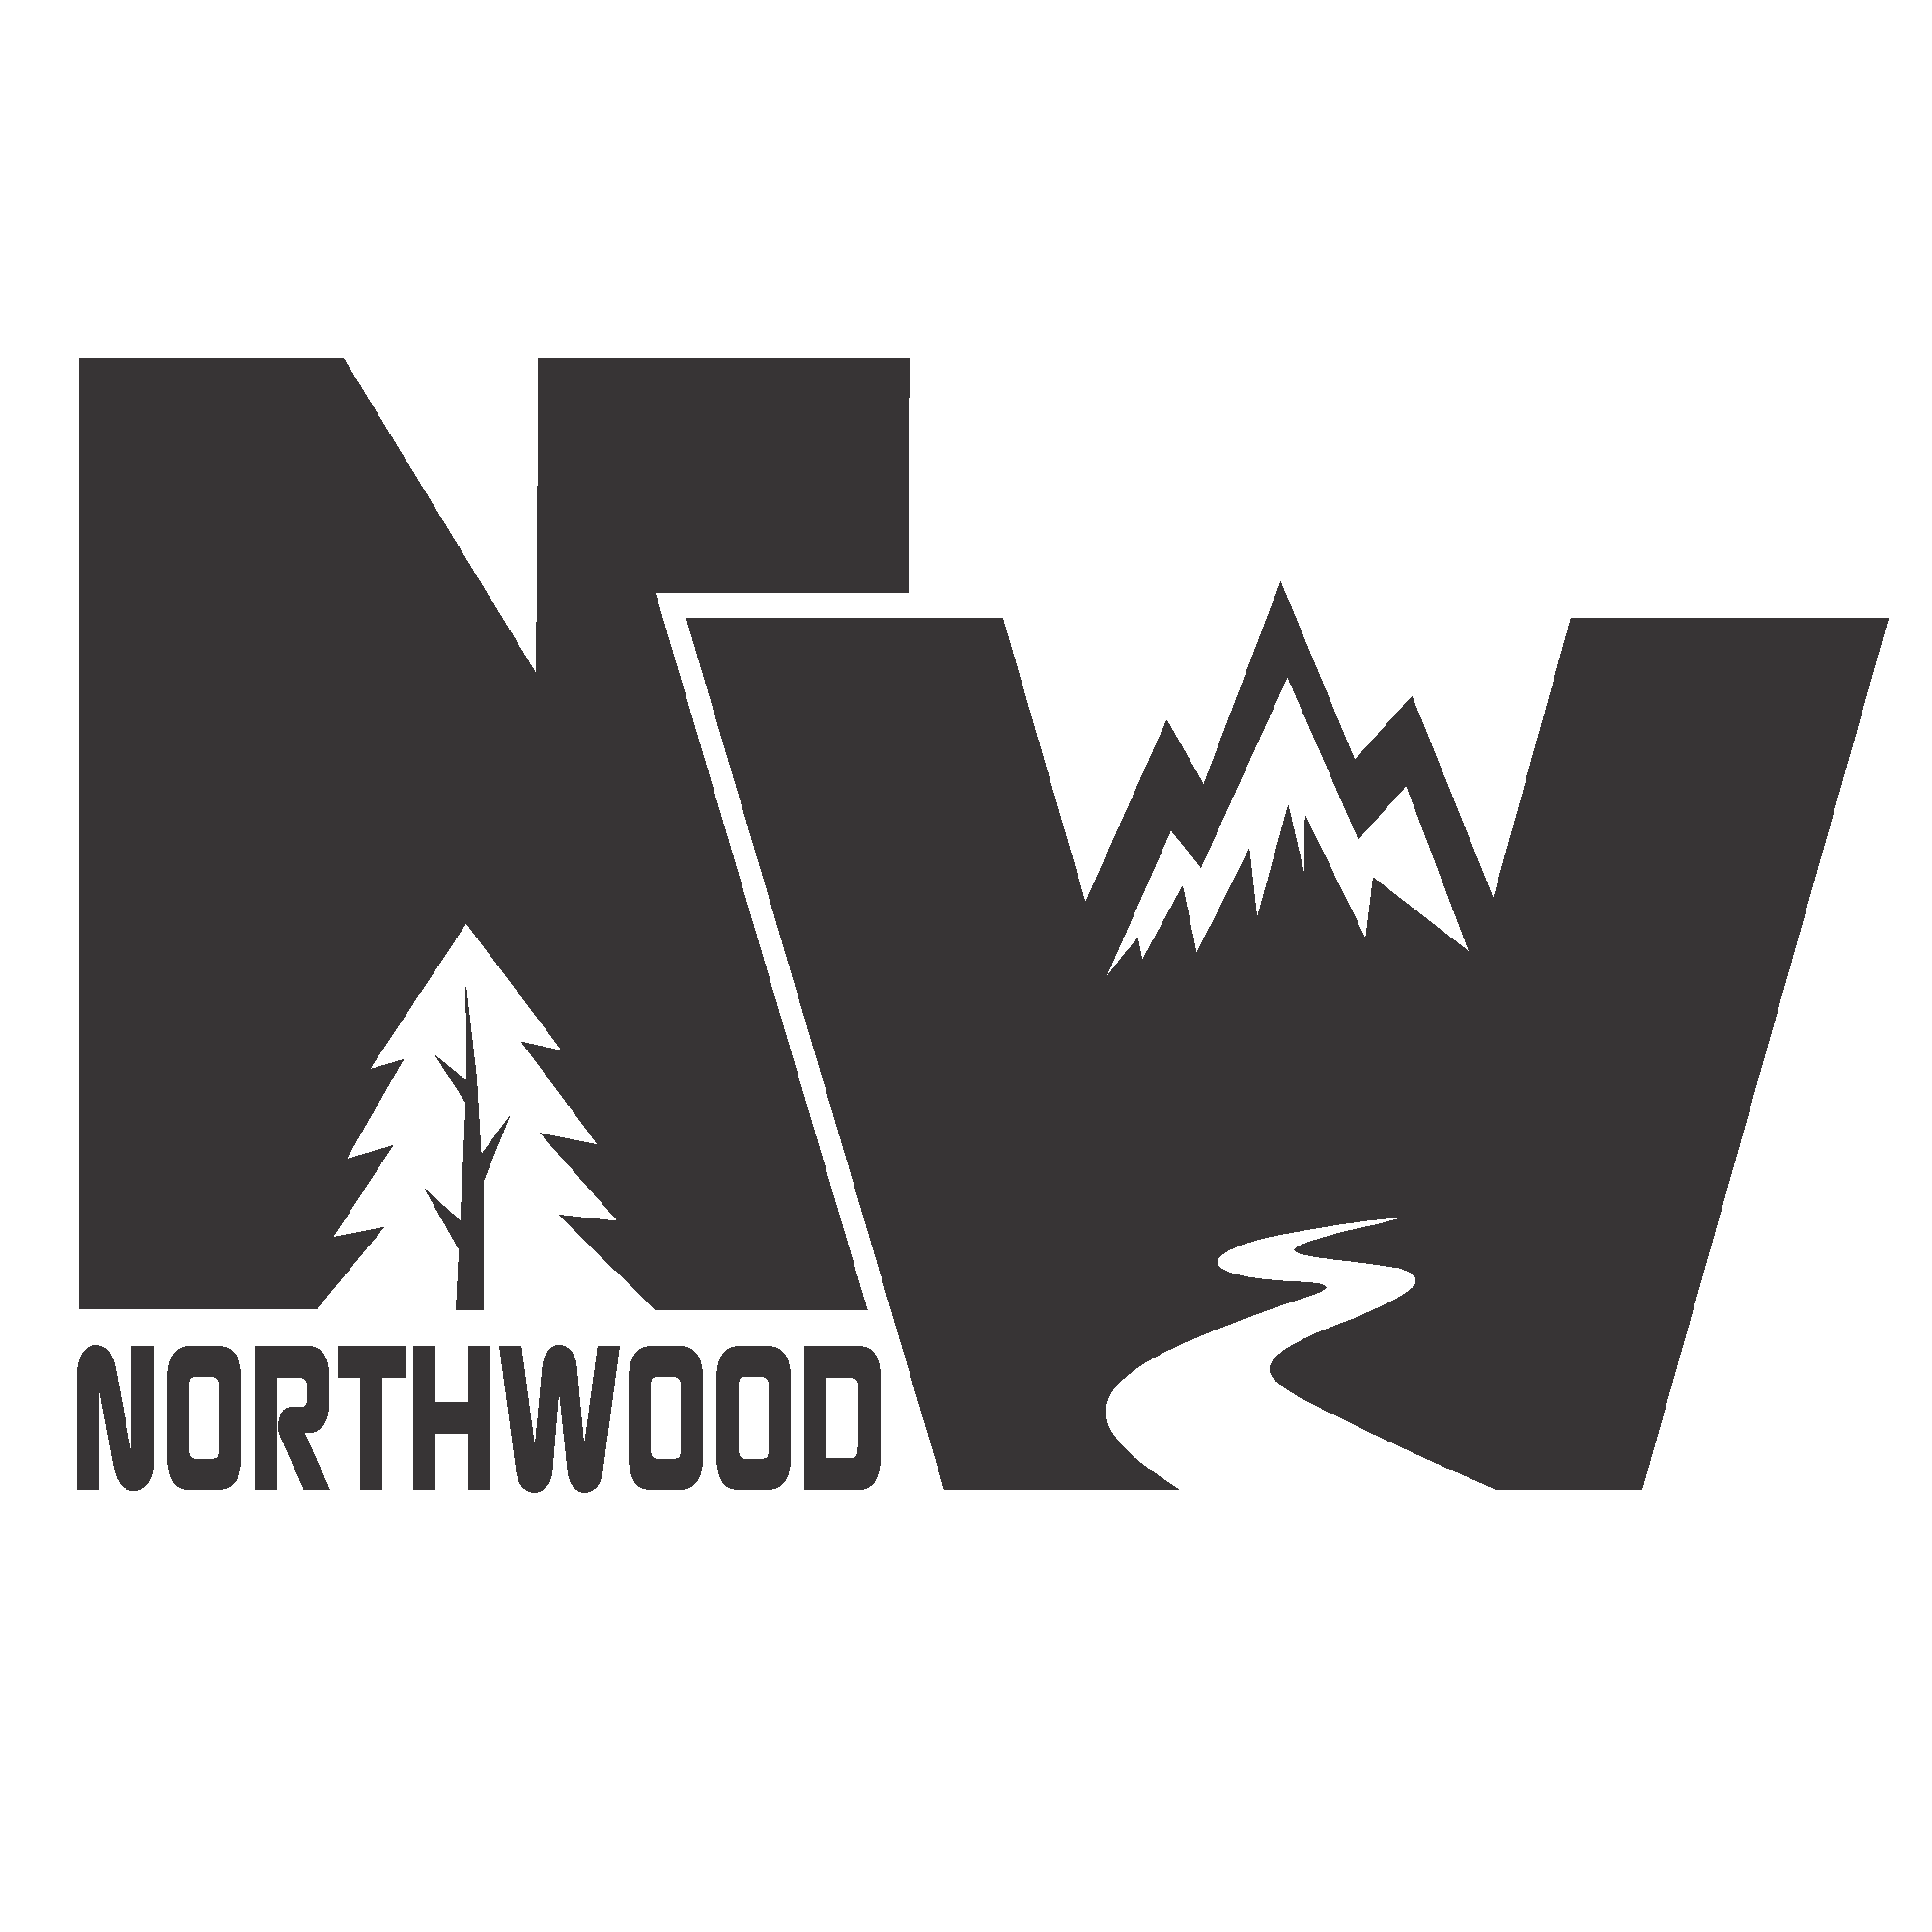 logo_Northwood